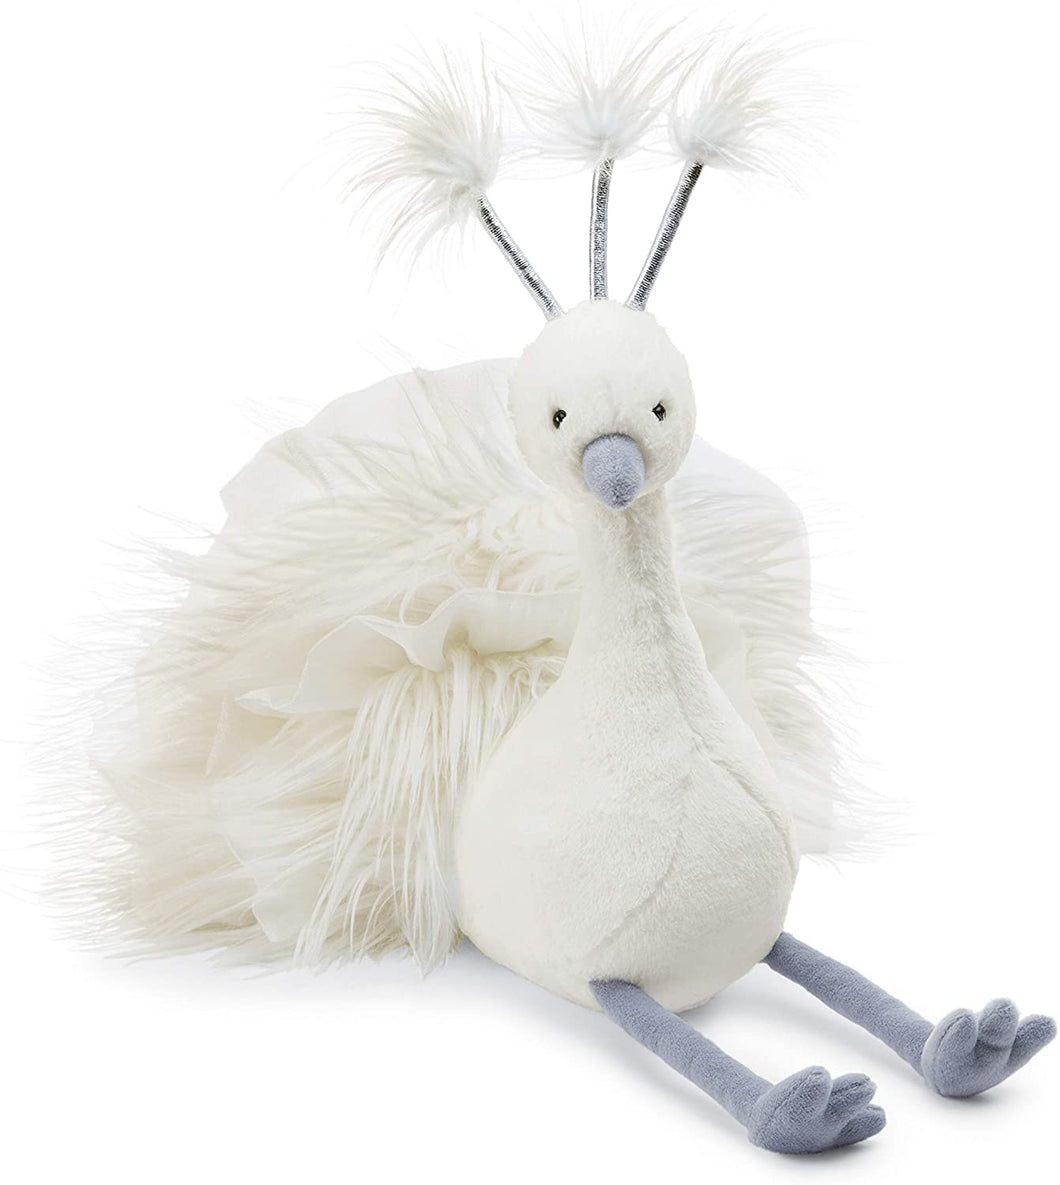 Jellycat Lola Wingaling Peacock Stuffed Animal, 20 inches